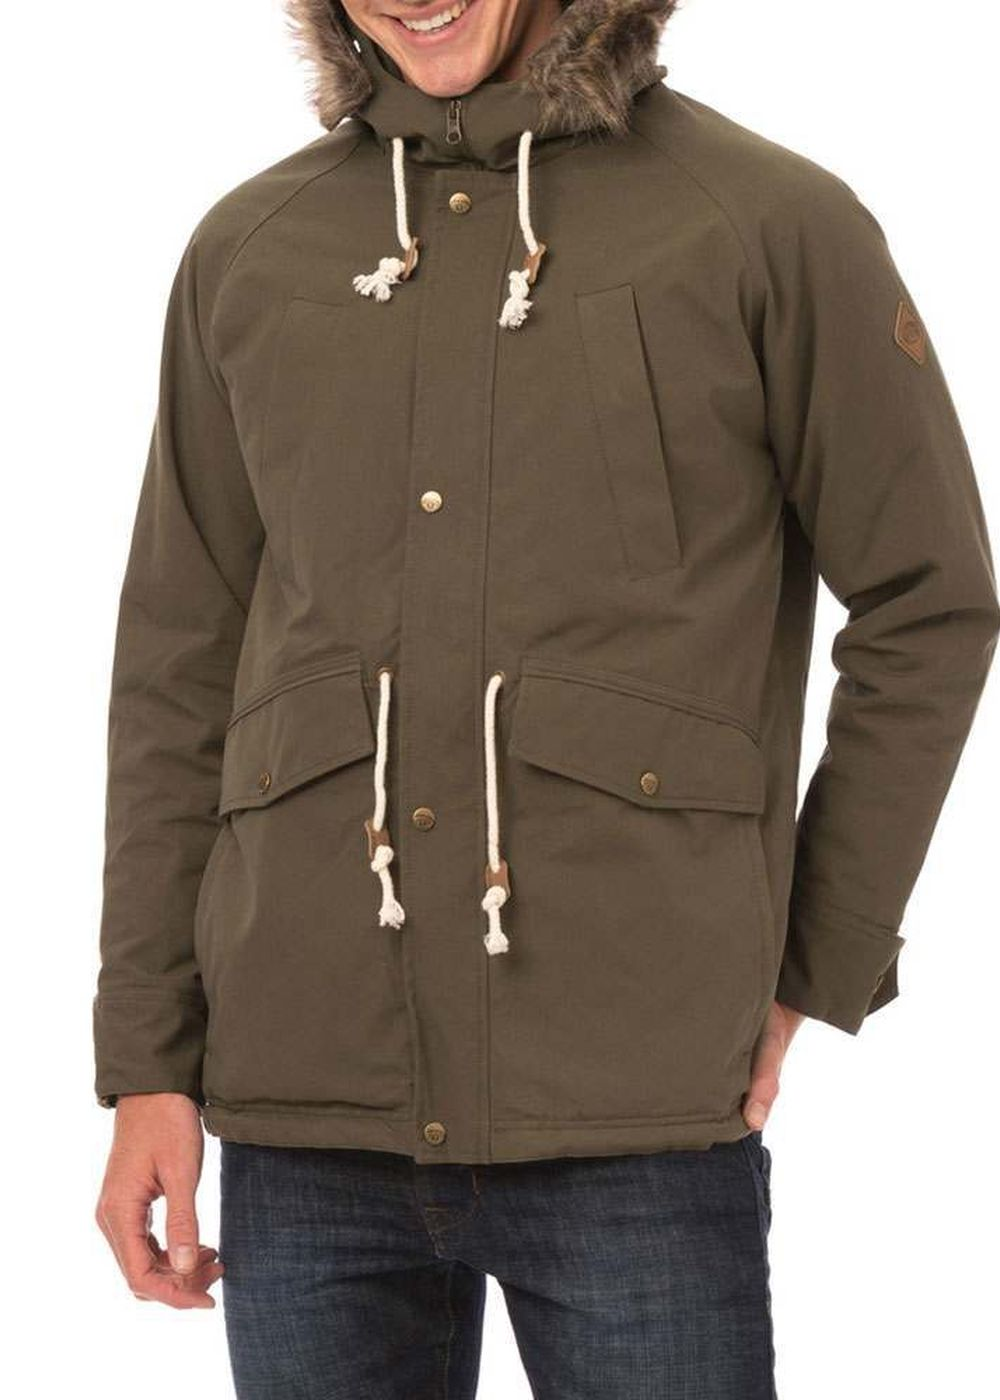 animal jamisons parka jacket olive green